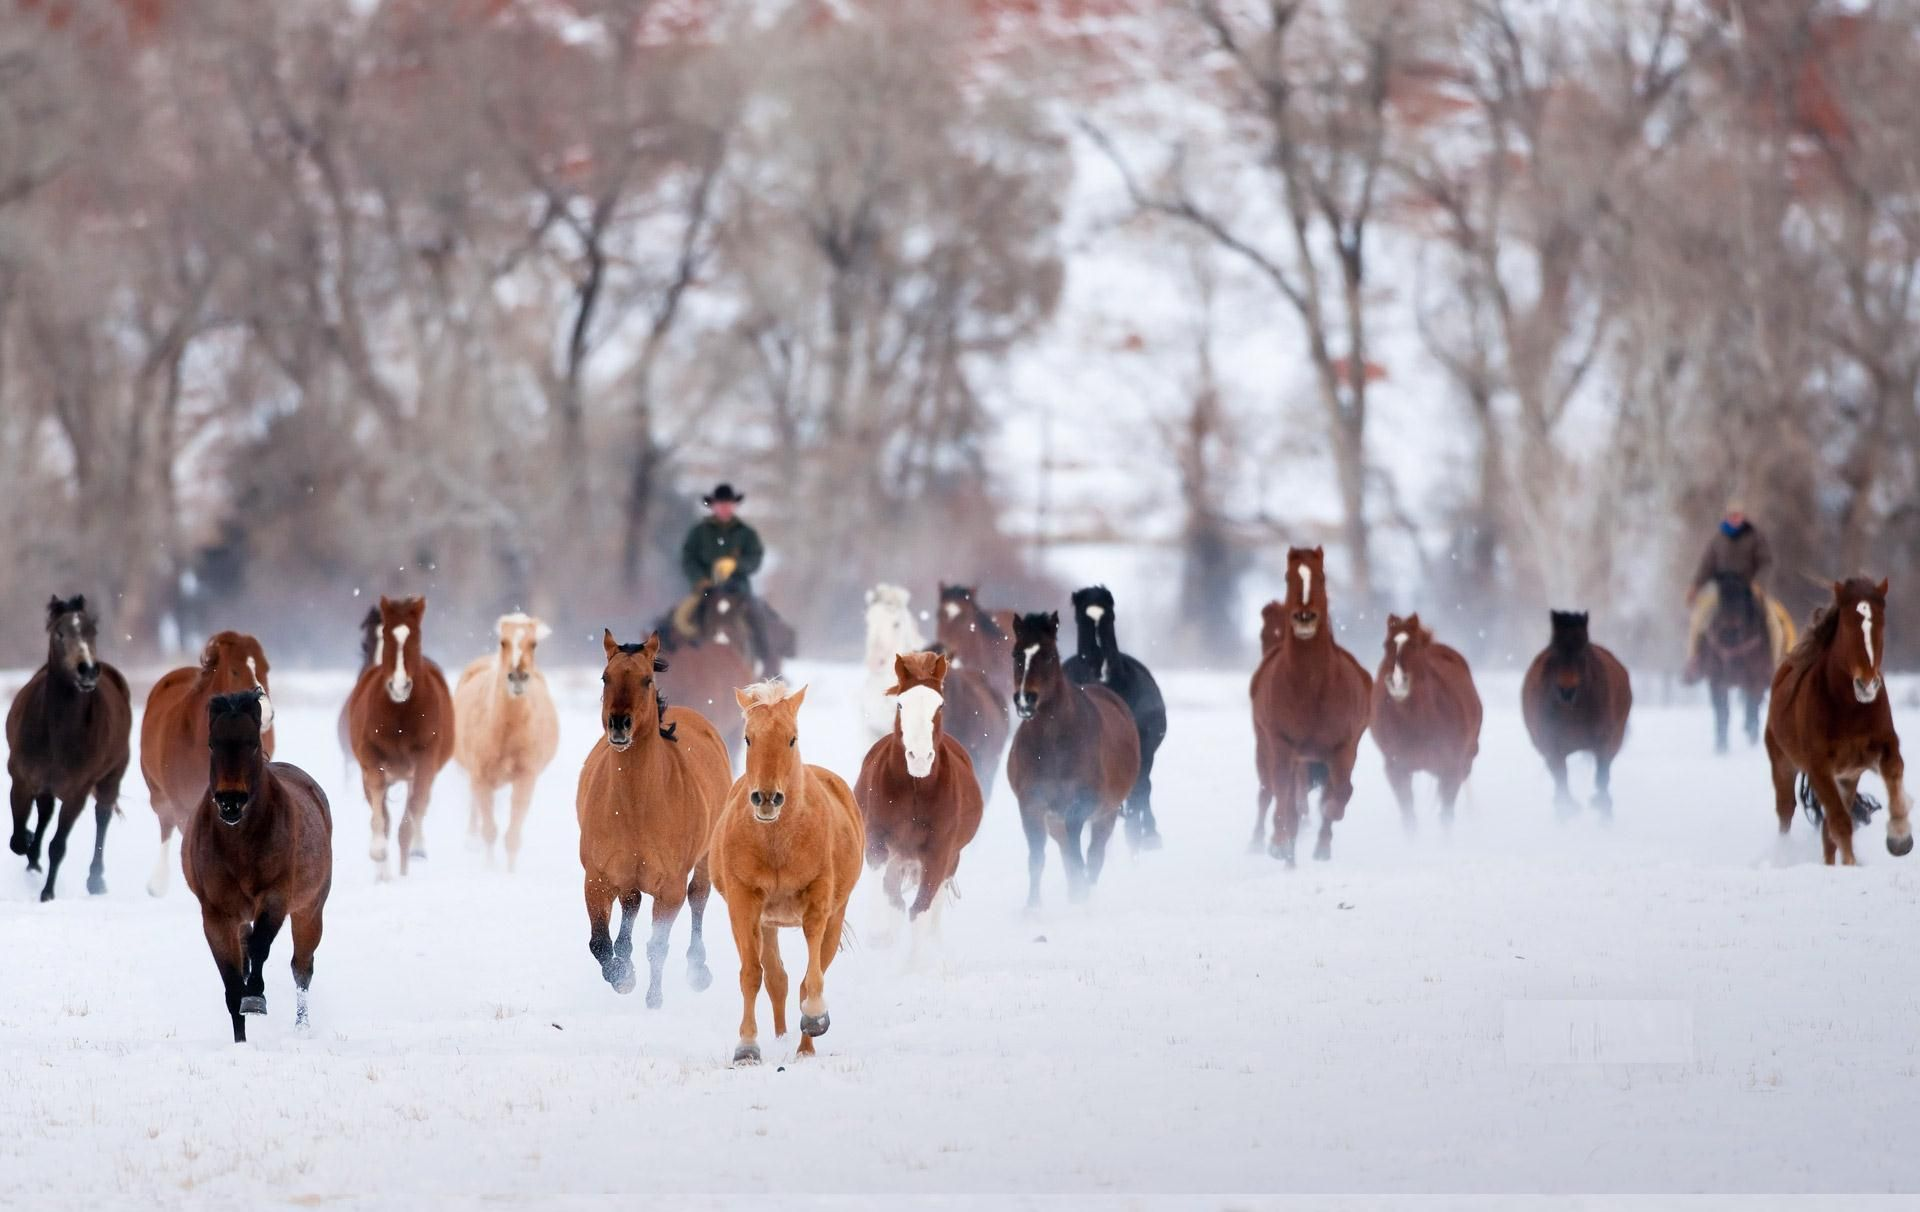 Top Wallpaper Horse Winter - 6e5faf735af5400e85da890ebf6cfa13  Graphic_394274.jpg